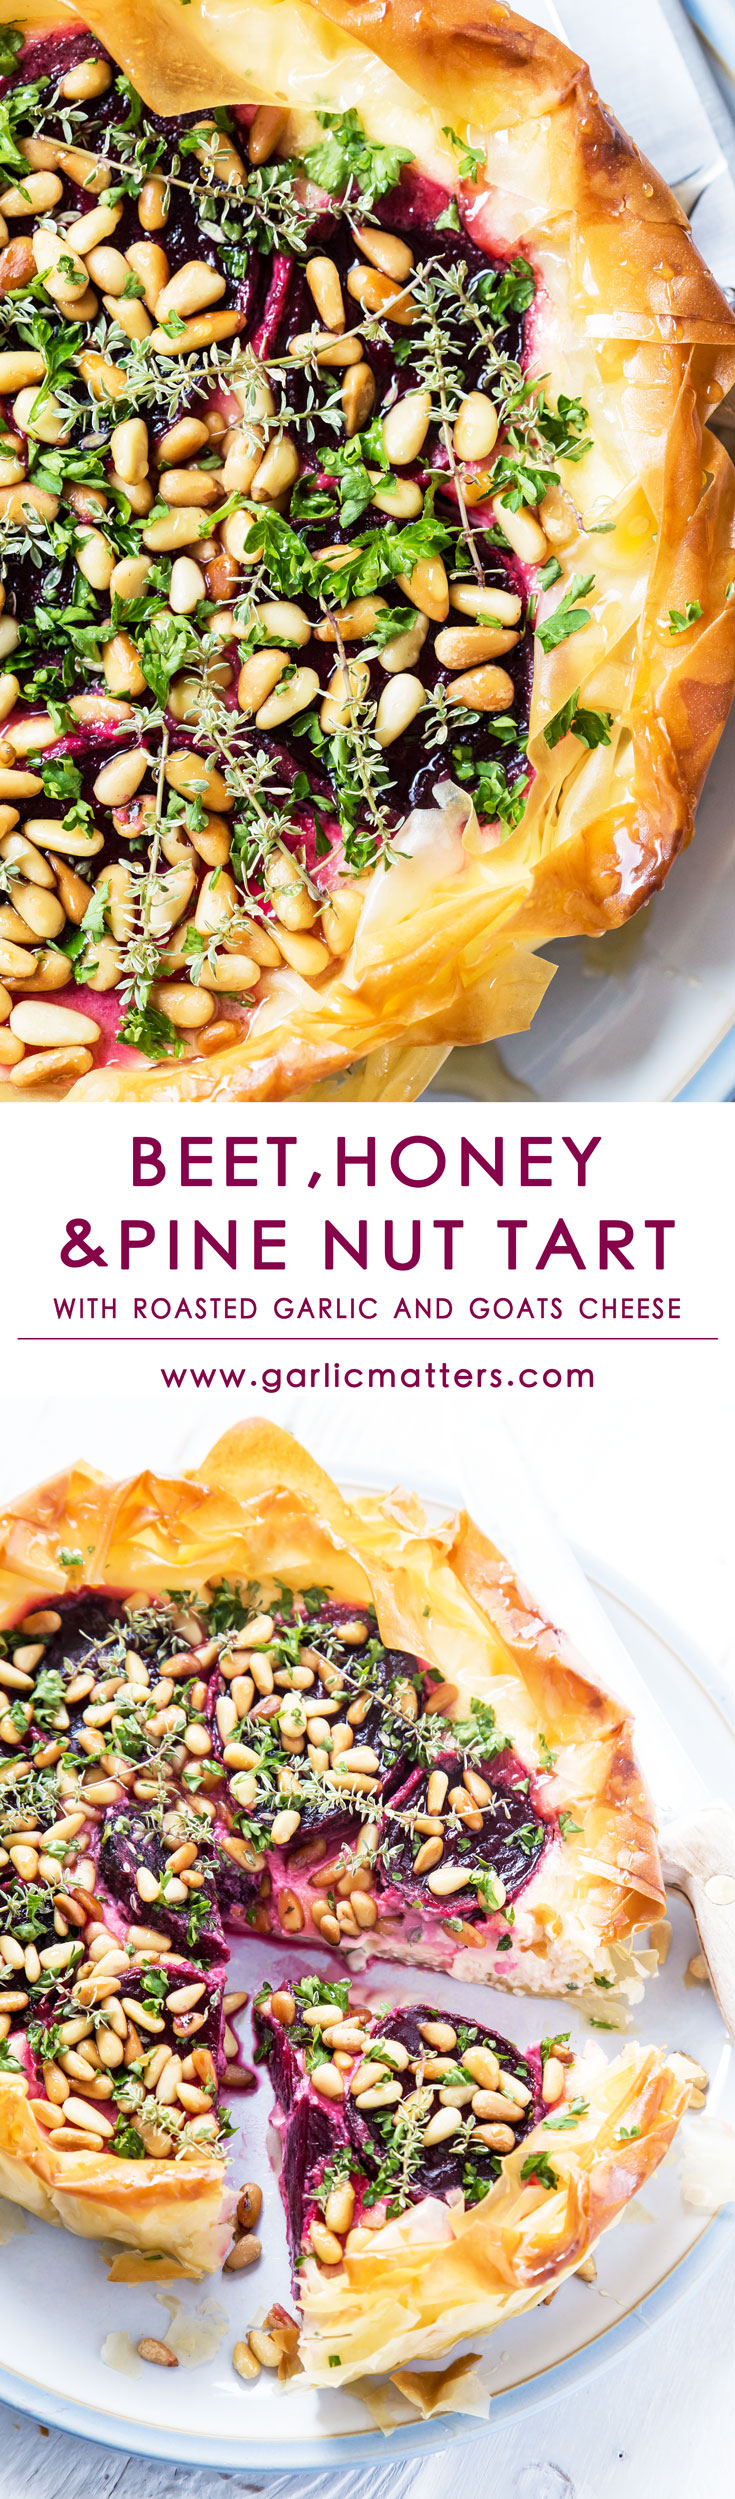 Beet, honey and pine nut tart is light and earthy at the same time, tender inside and crunchy on the outside. Savoury, but with lovely sweet notes throughout, perfect to be eaten warm or cold. Above all remarkably light, flavoursome and mouthwatering summer lunch feast in each slice!